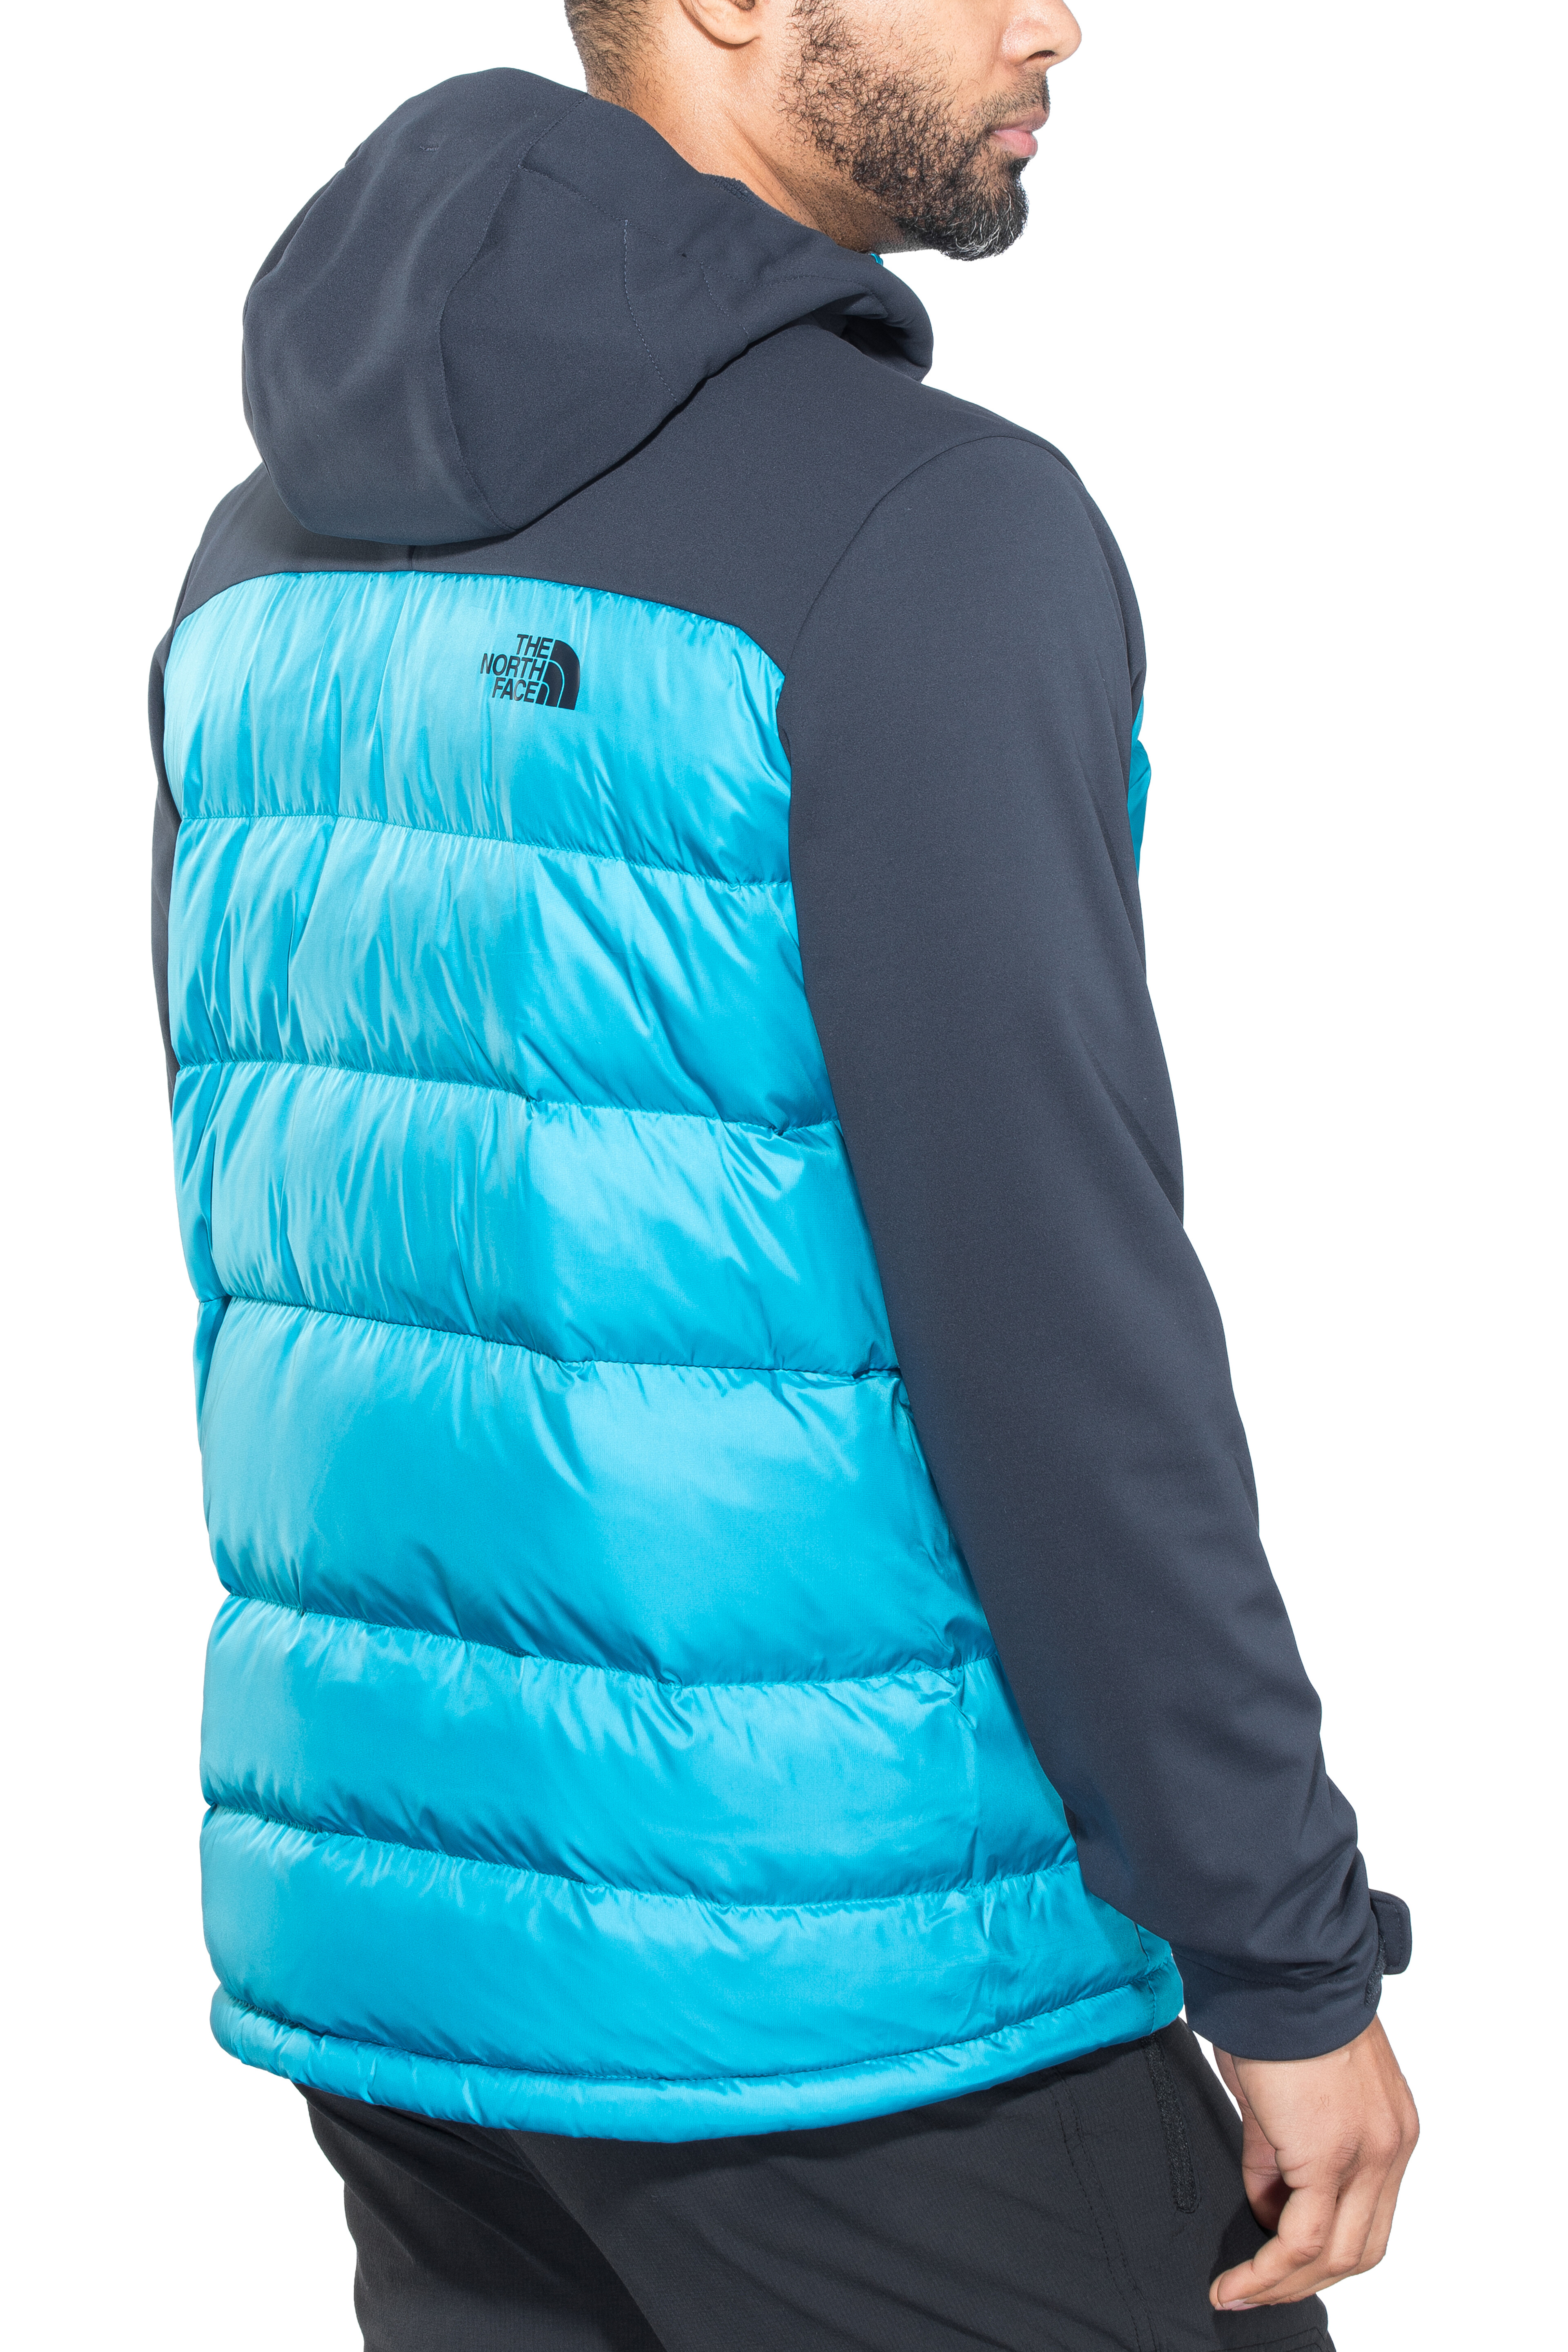 89e9db8ce1 The North Face Peak Frontier - Veste Homme - bleu sur CAMPZ !